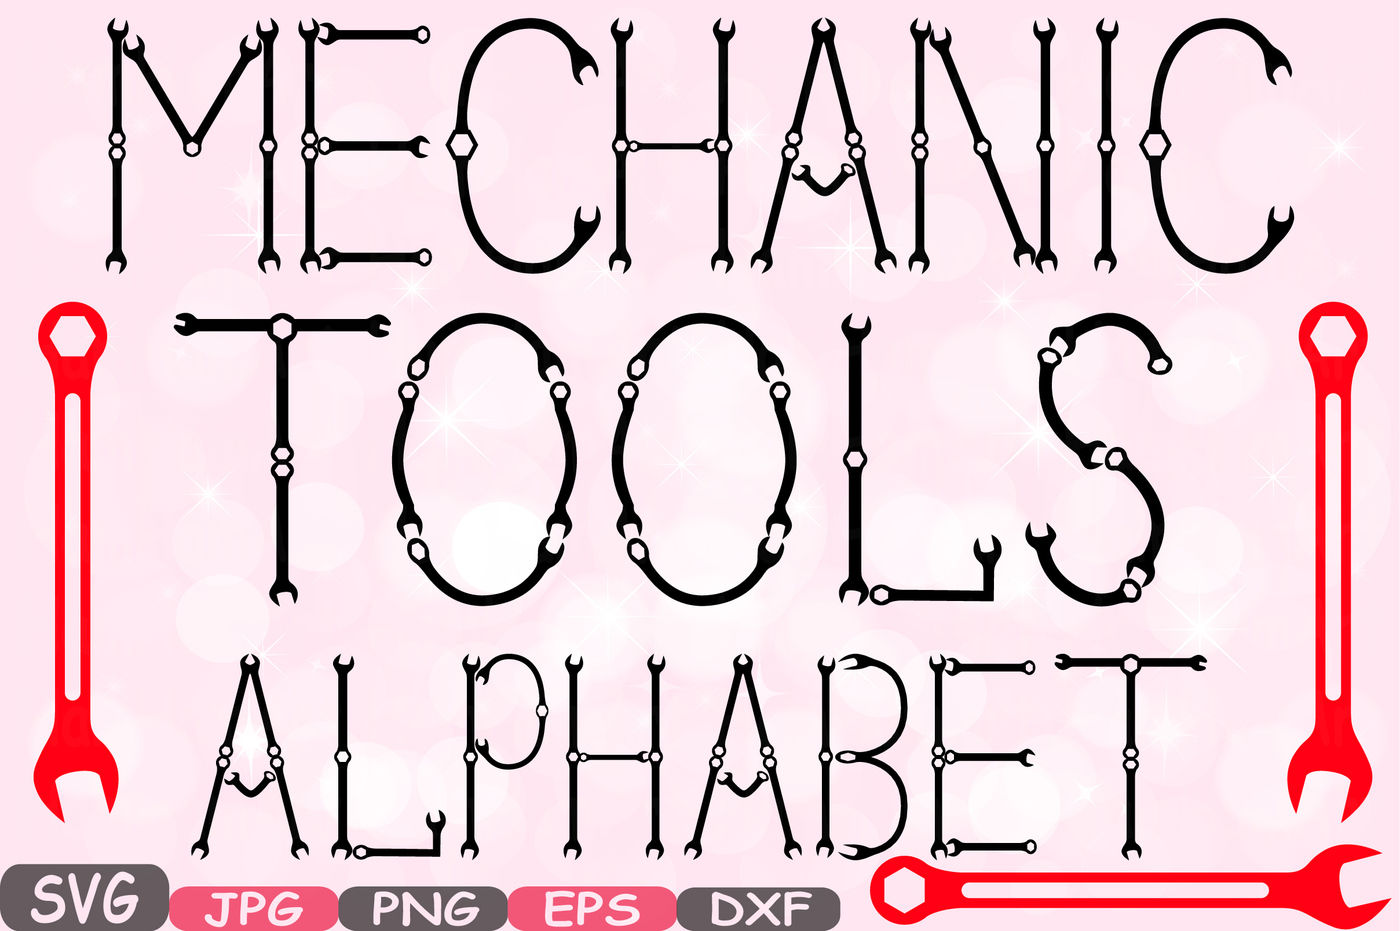 Mechanic Tools Alphabet Svg Silhouette Cutting Files Letters Abc